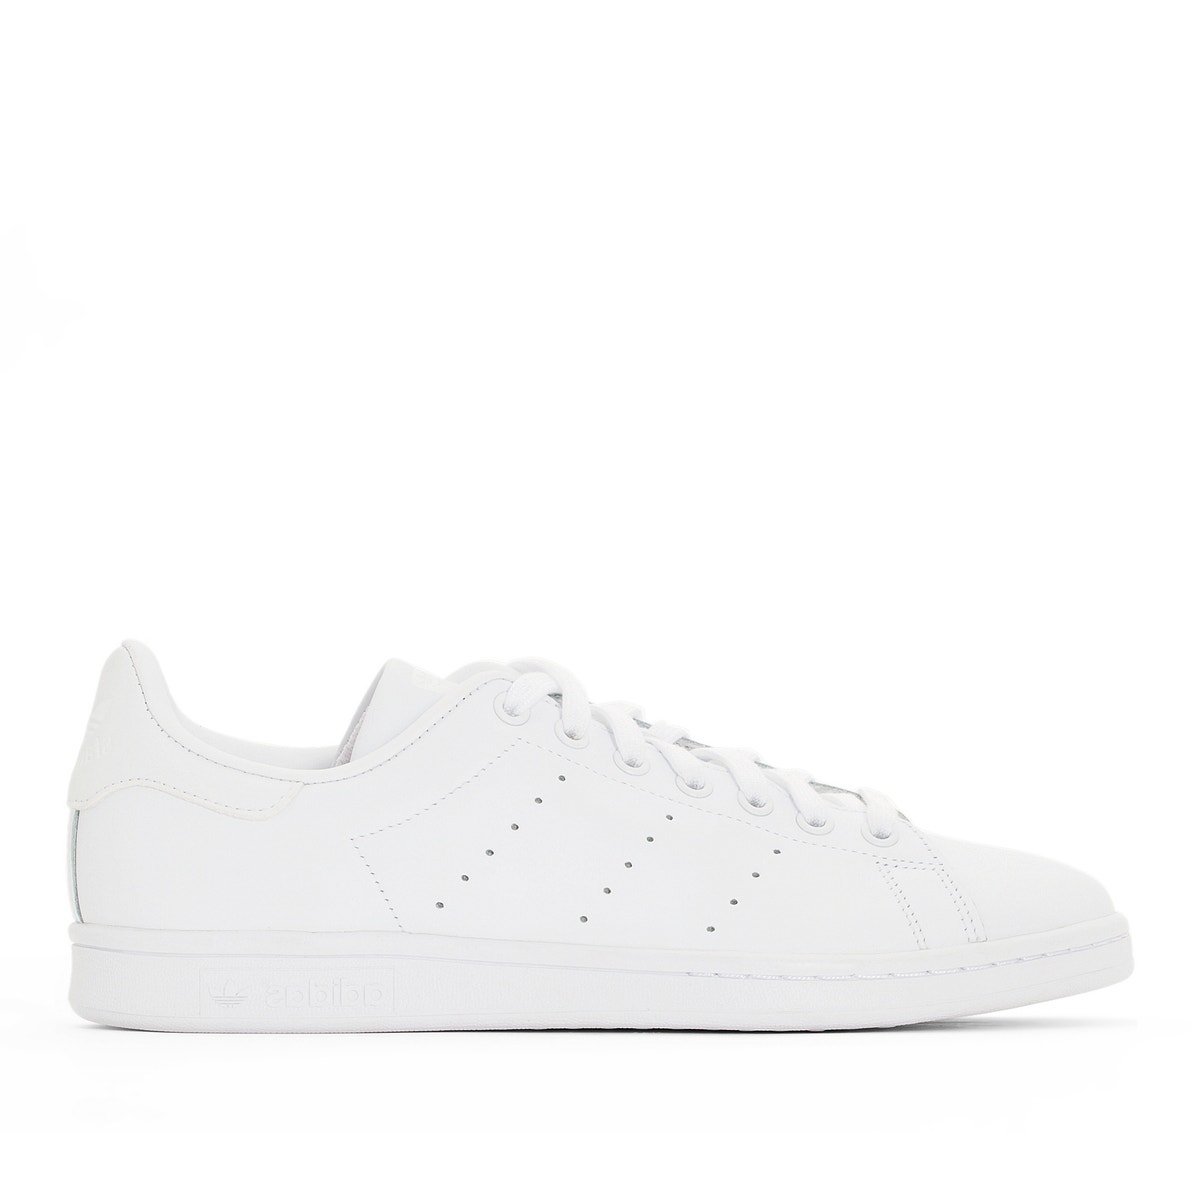 adidas Originals - ADIDAS ORIGINALS Stan Smith 350111061 - 10465